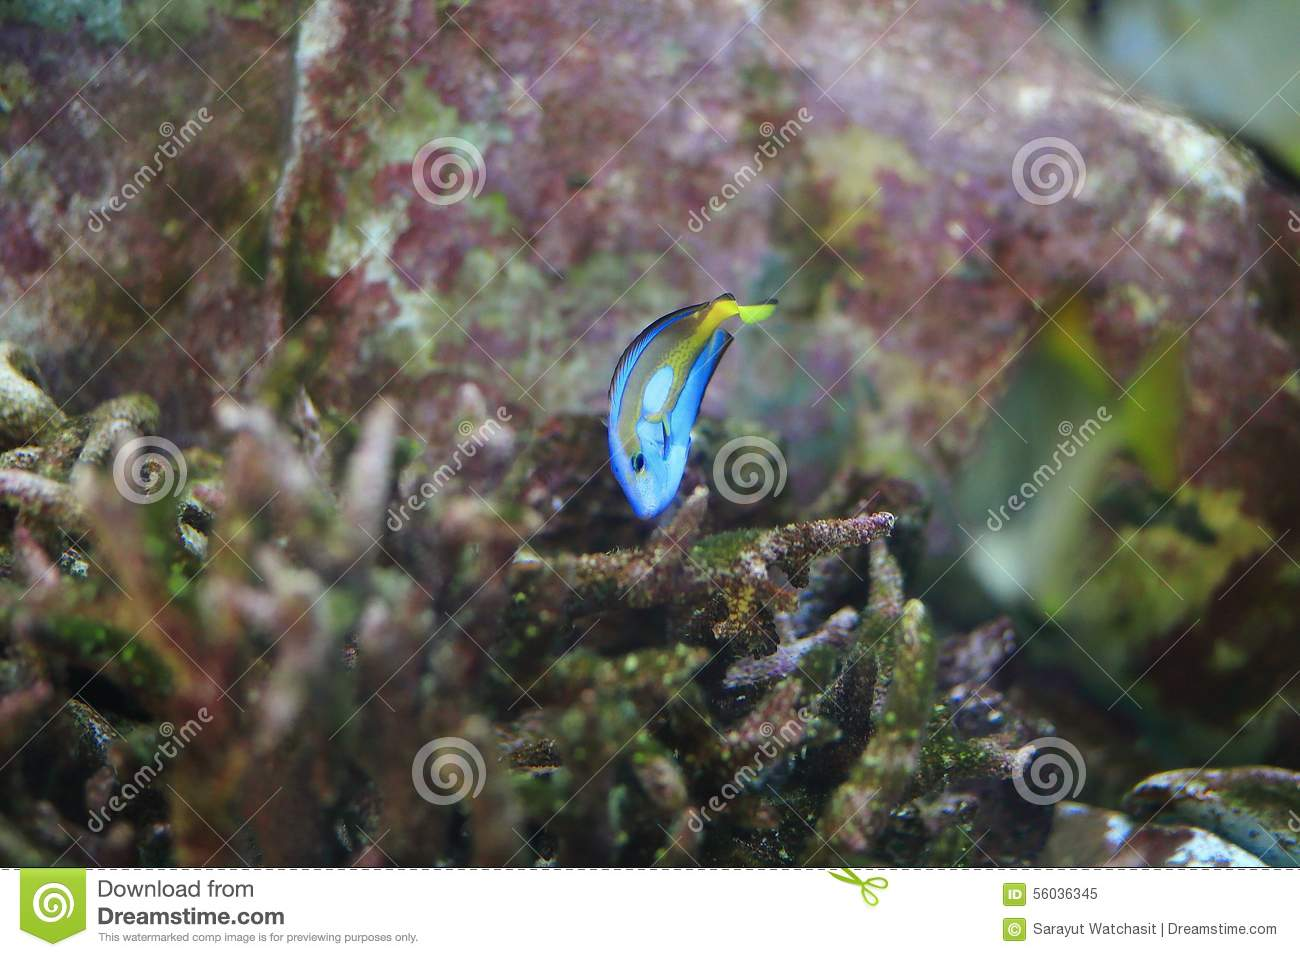 Melichthys Niger Stock Image Image Of Fins, Durgon, Anal - 56036345-5097